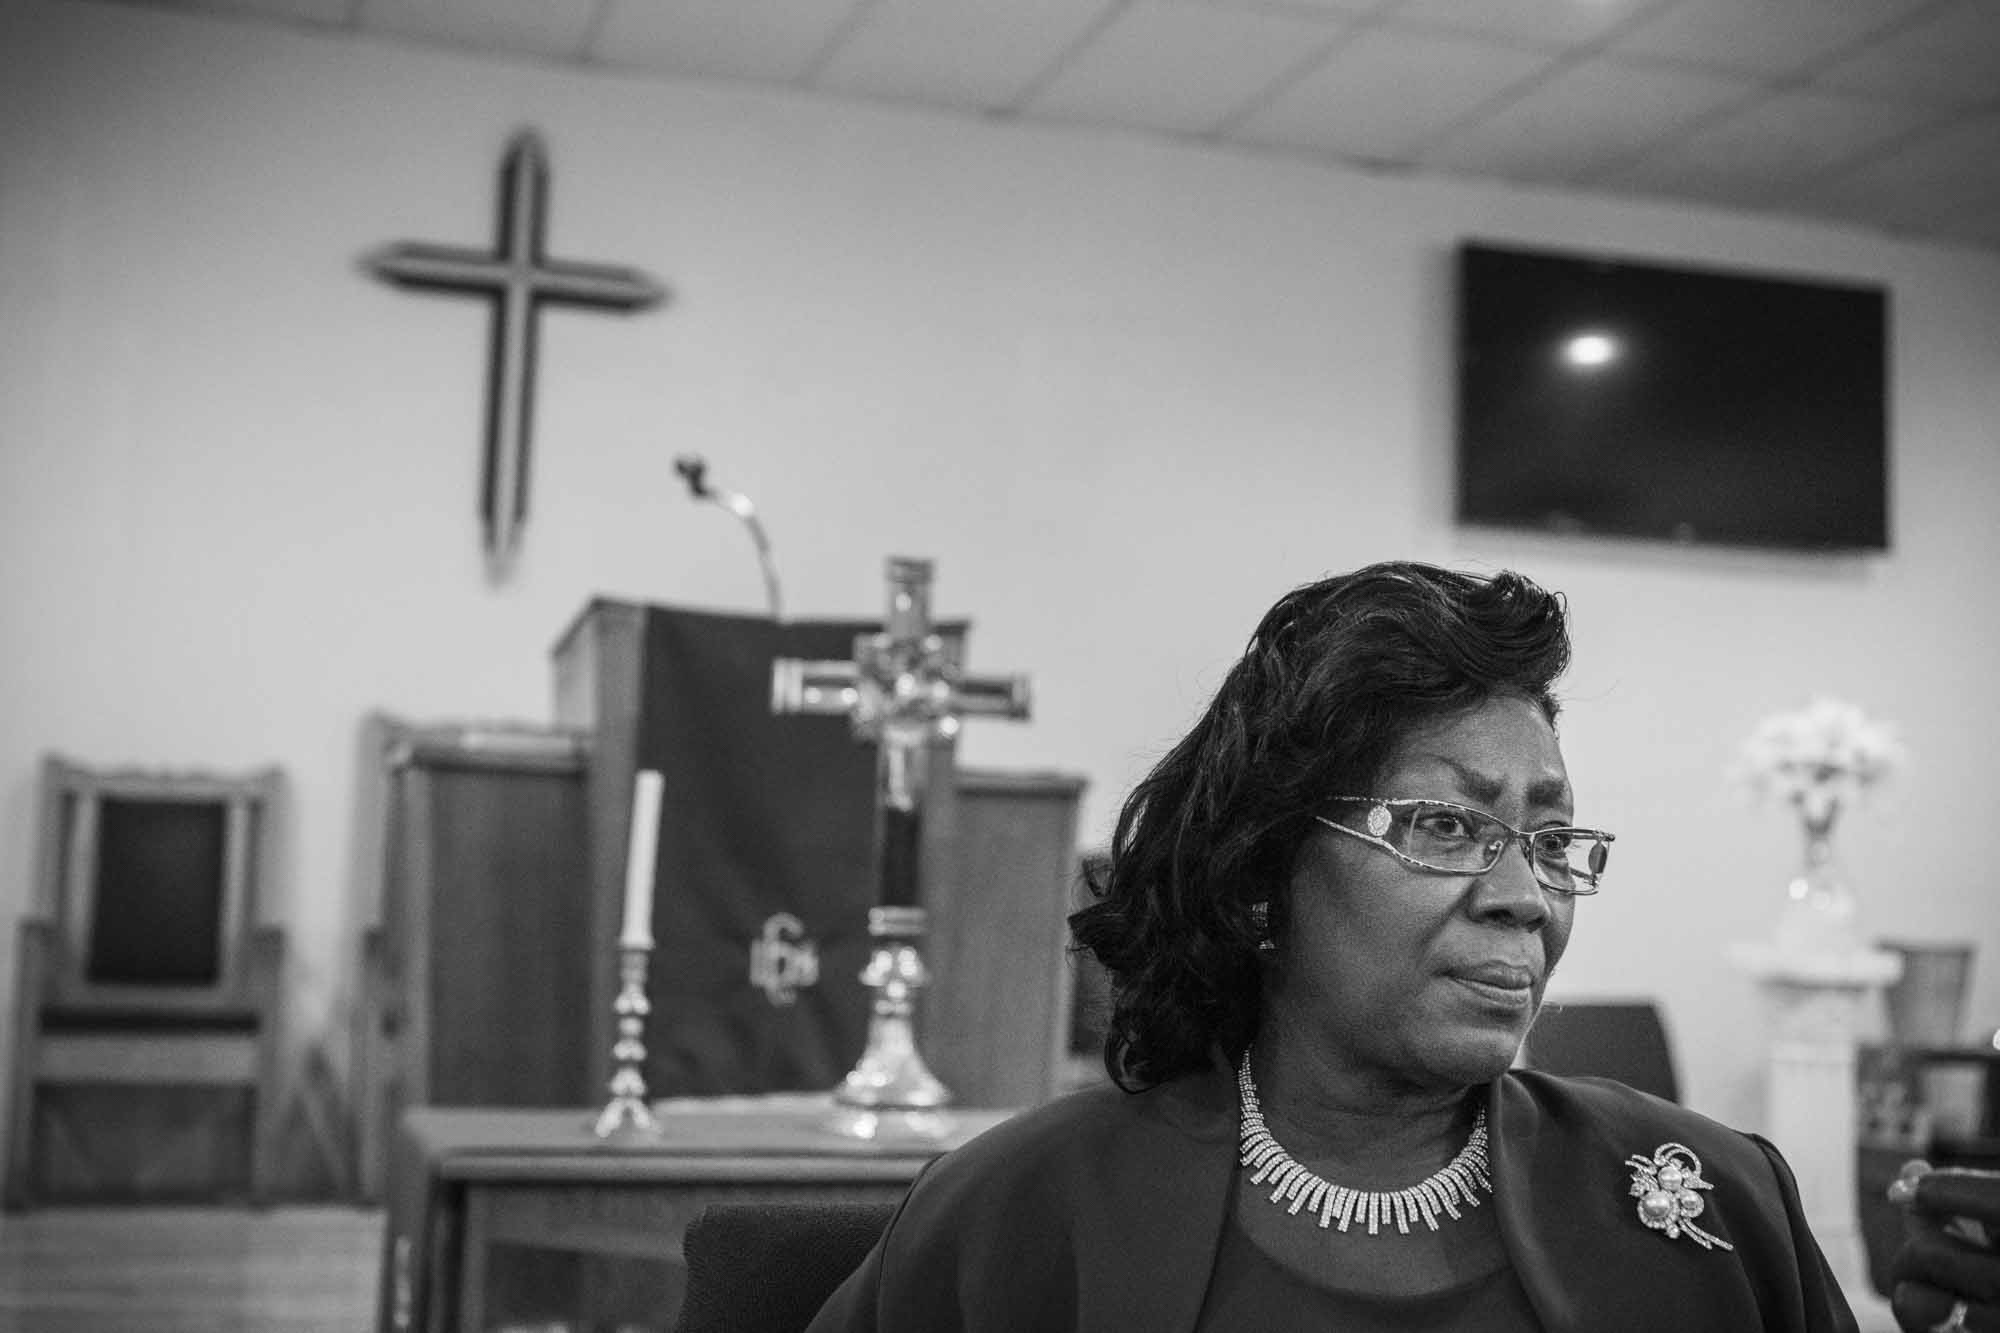 Church Life  Philadelphia Creative Portrait Black and White Photographer: Zave Smith